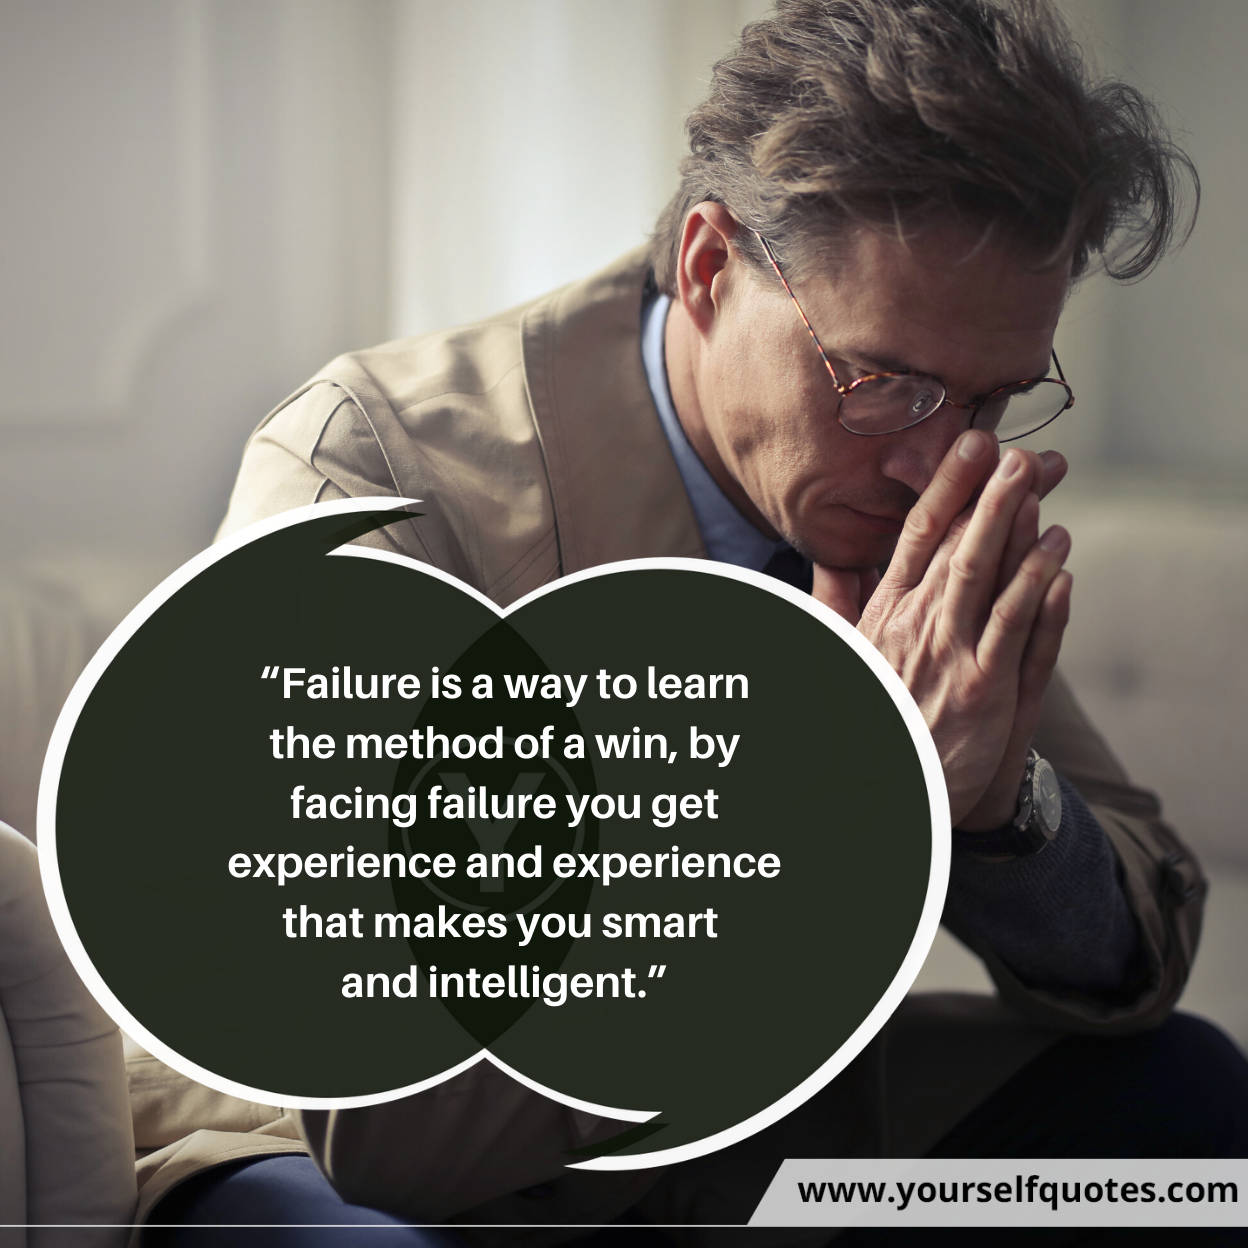 Life Failure Quotes